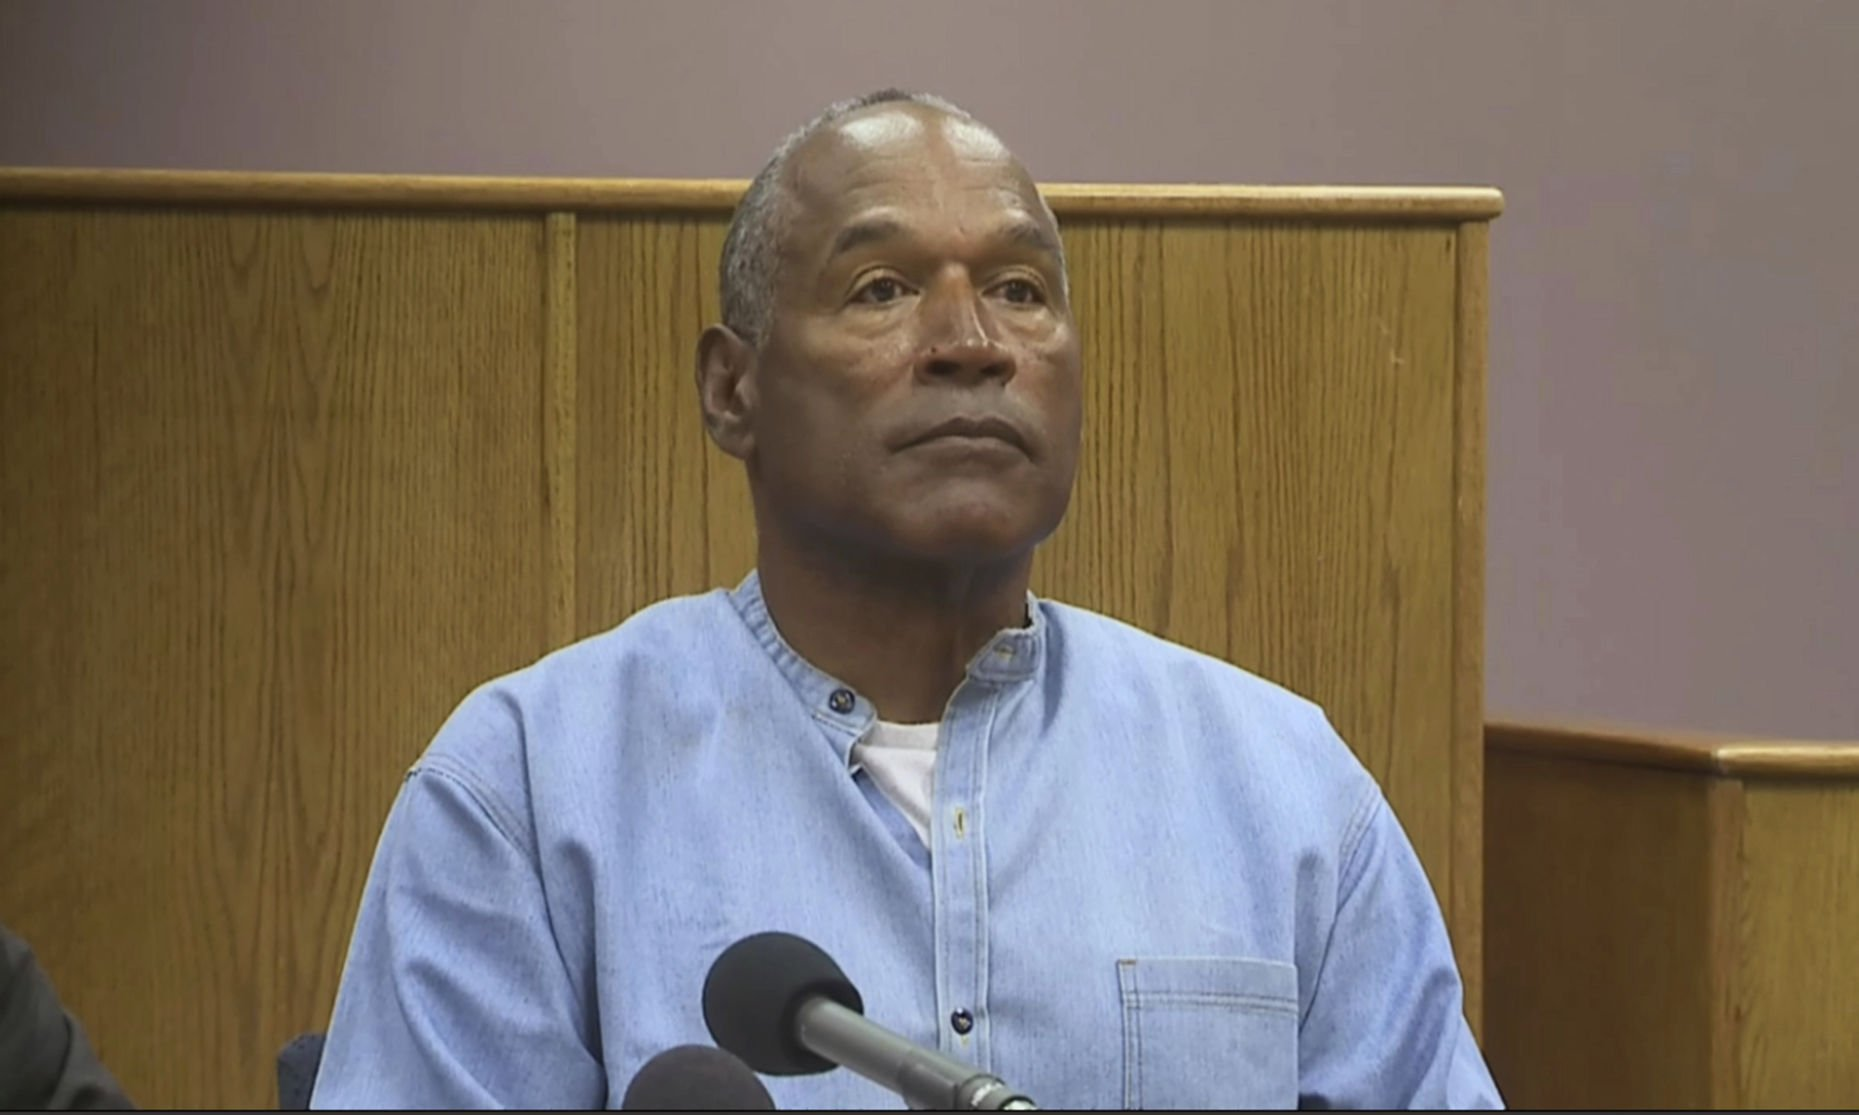 OJ Simpson granted parole after nearly nine years in prison